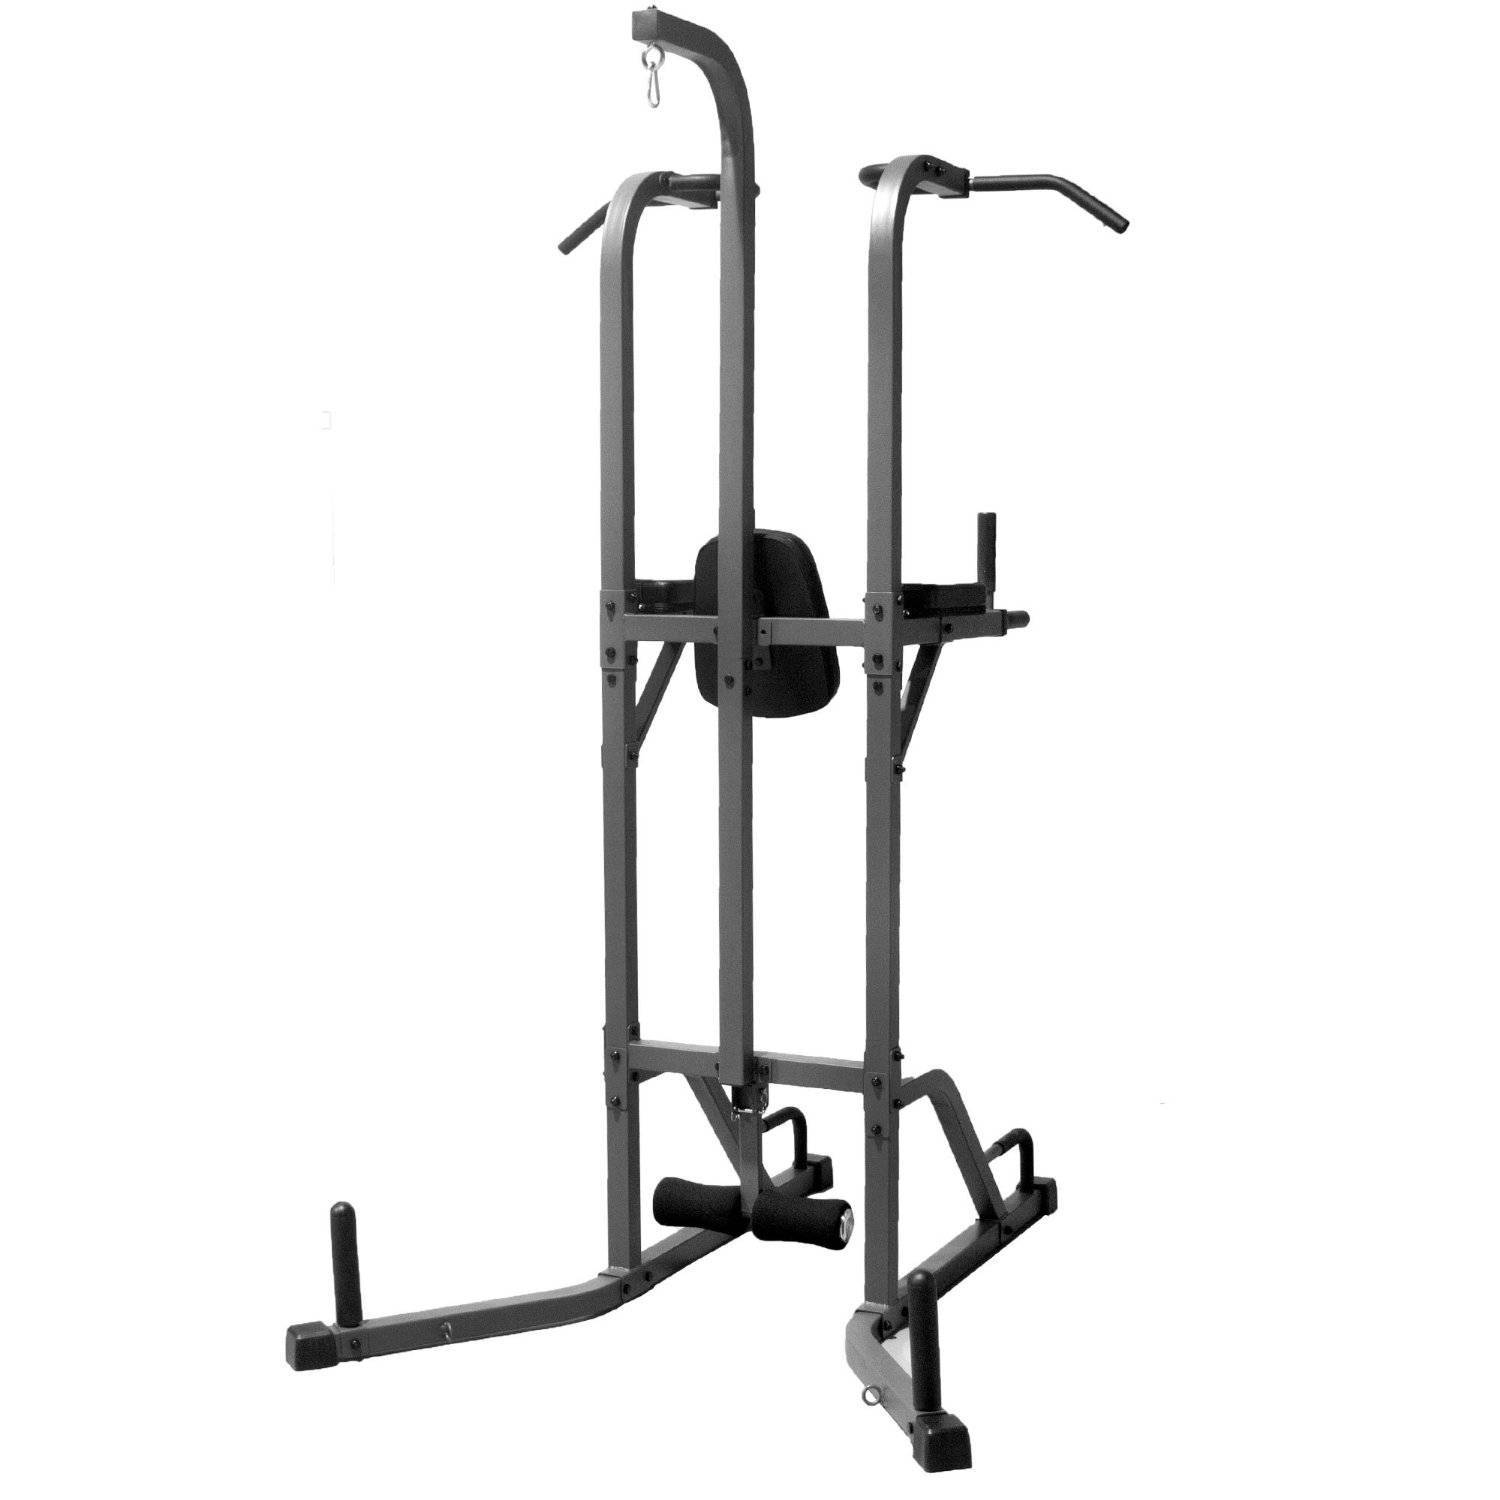 The Best Power Tower With Heavy Bag Stand Review